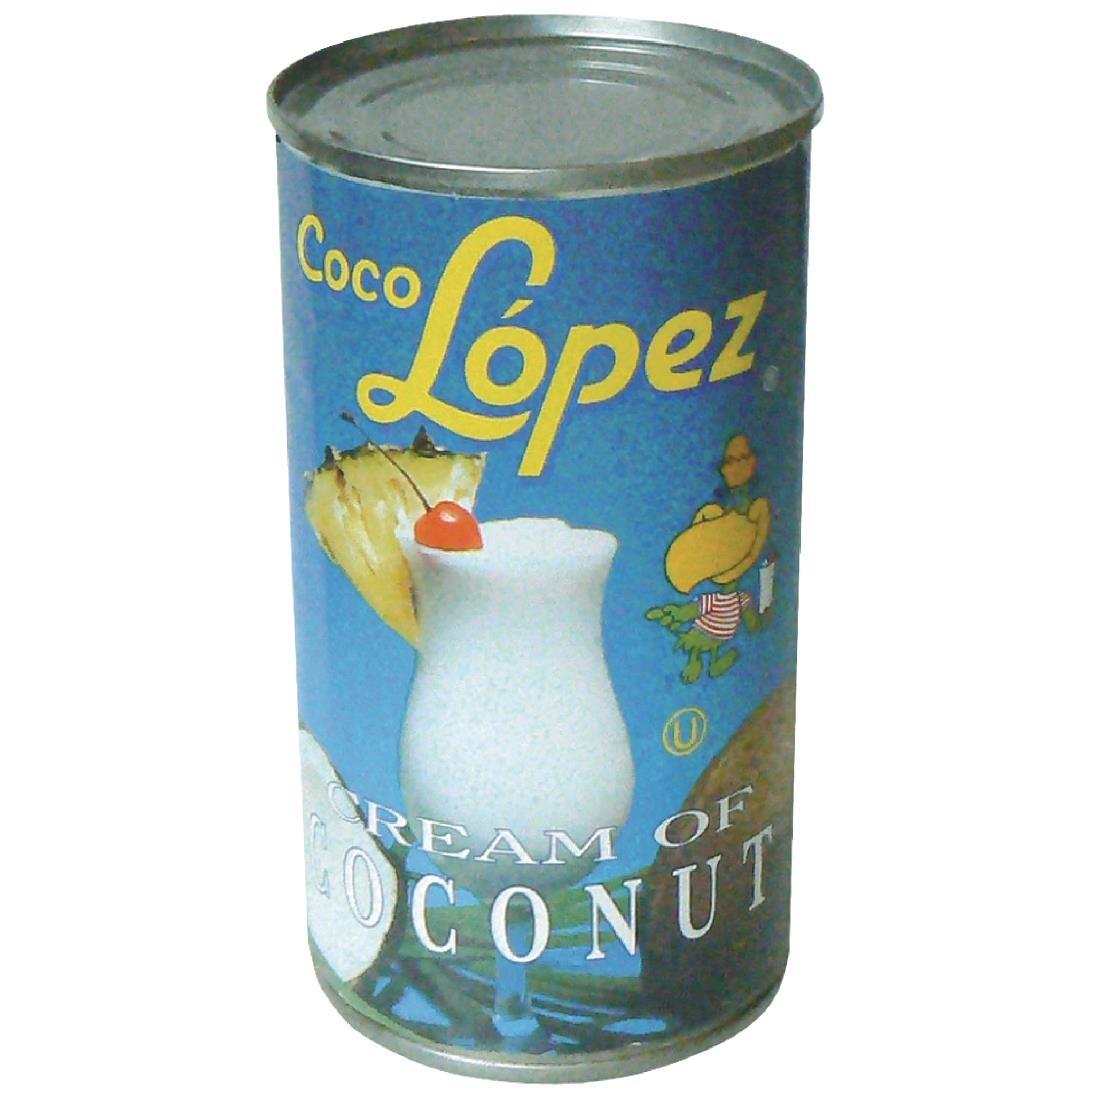 Image of Coco Lopez Cream of Coconut Cocktail Mix